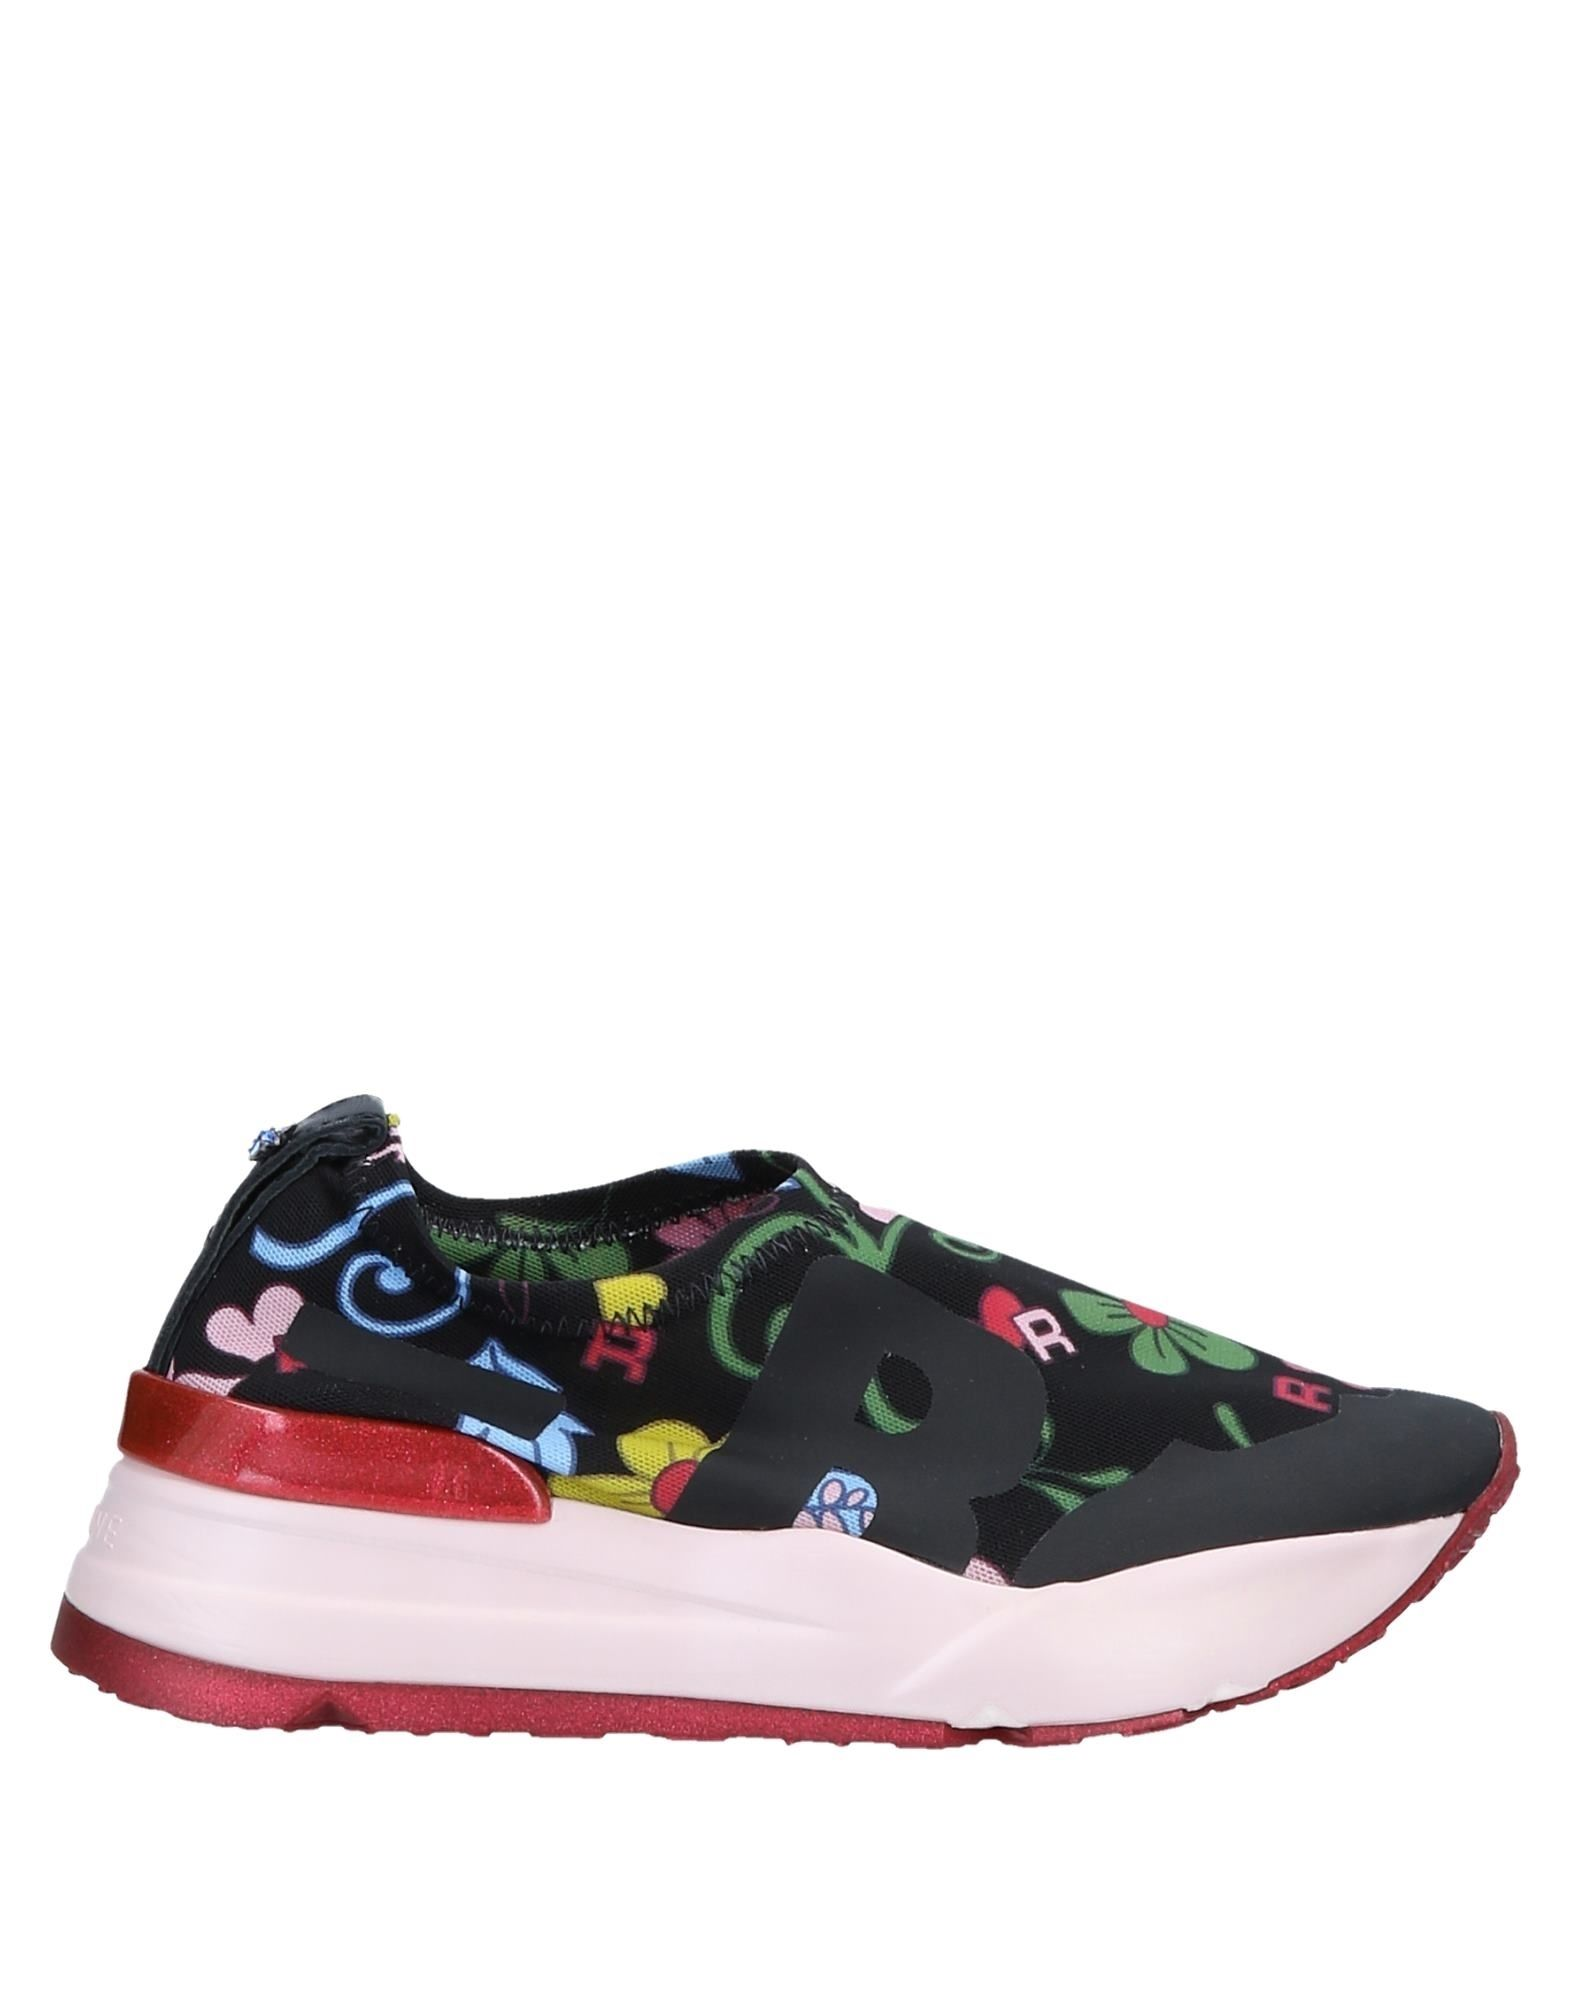 Ruco Line Sneakers - Women Ruco  Line Sneakers online on  Ruco Australia - 11567910OA 0ef447